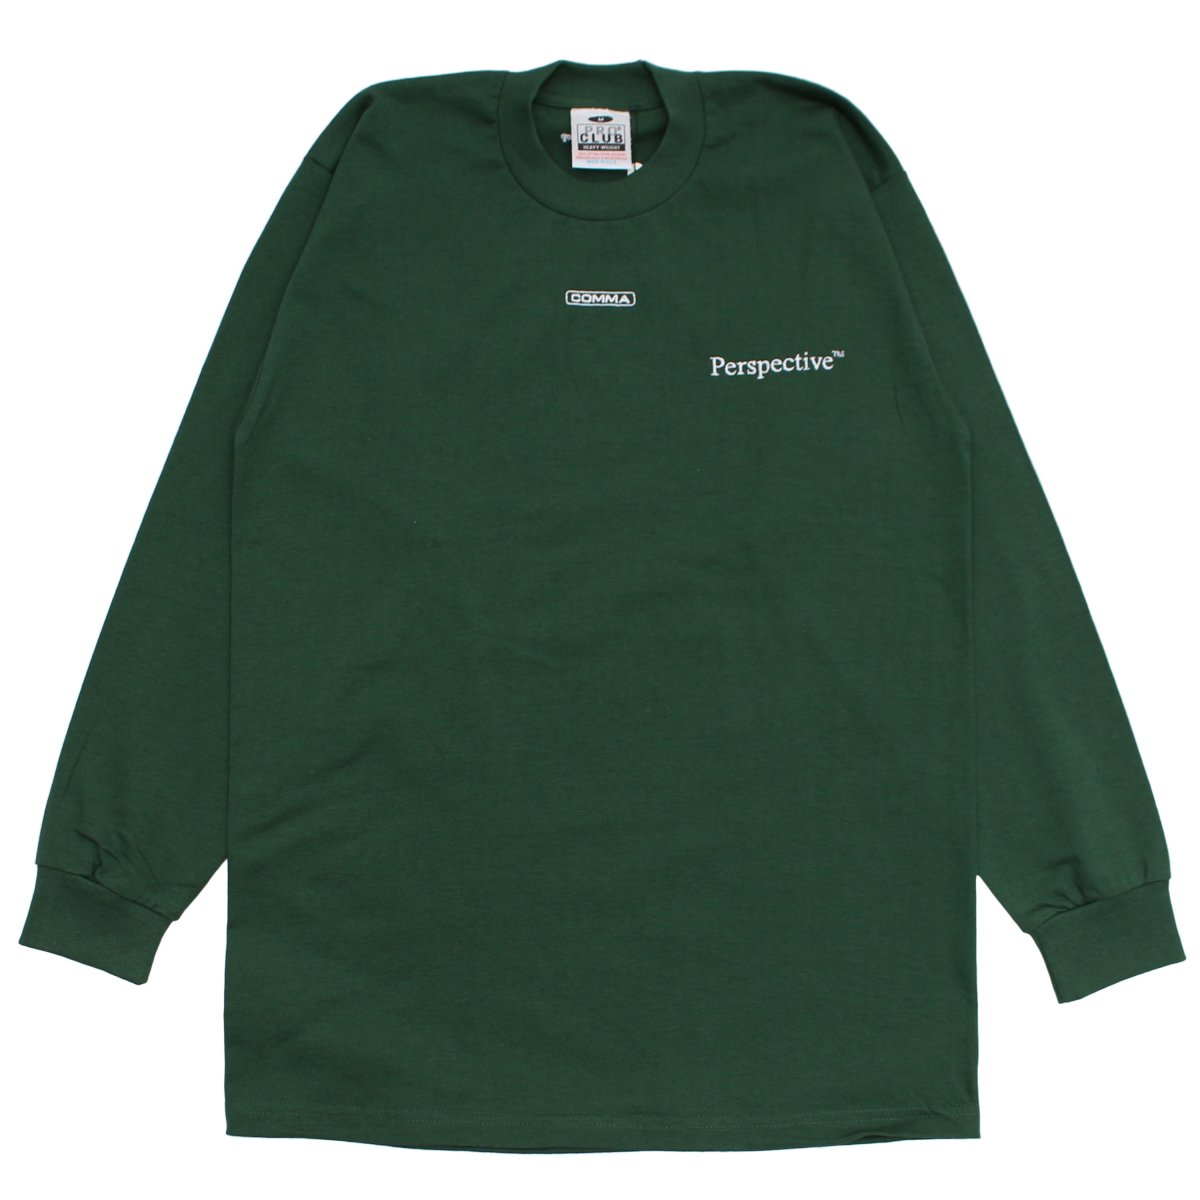 Perspective™ Green Long Sleeve Tee